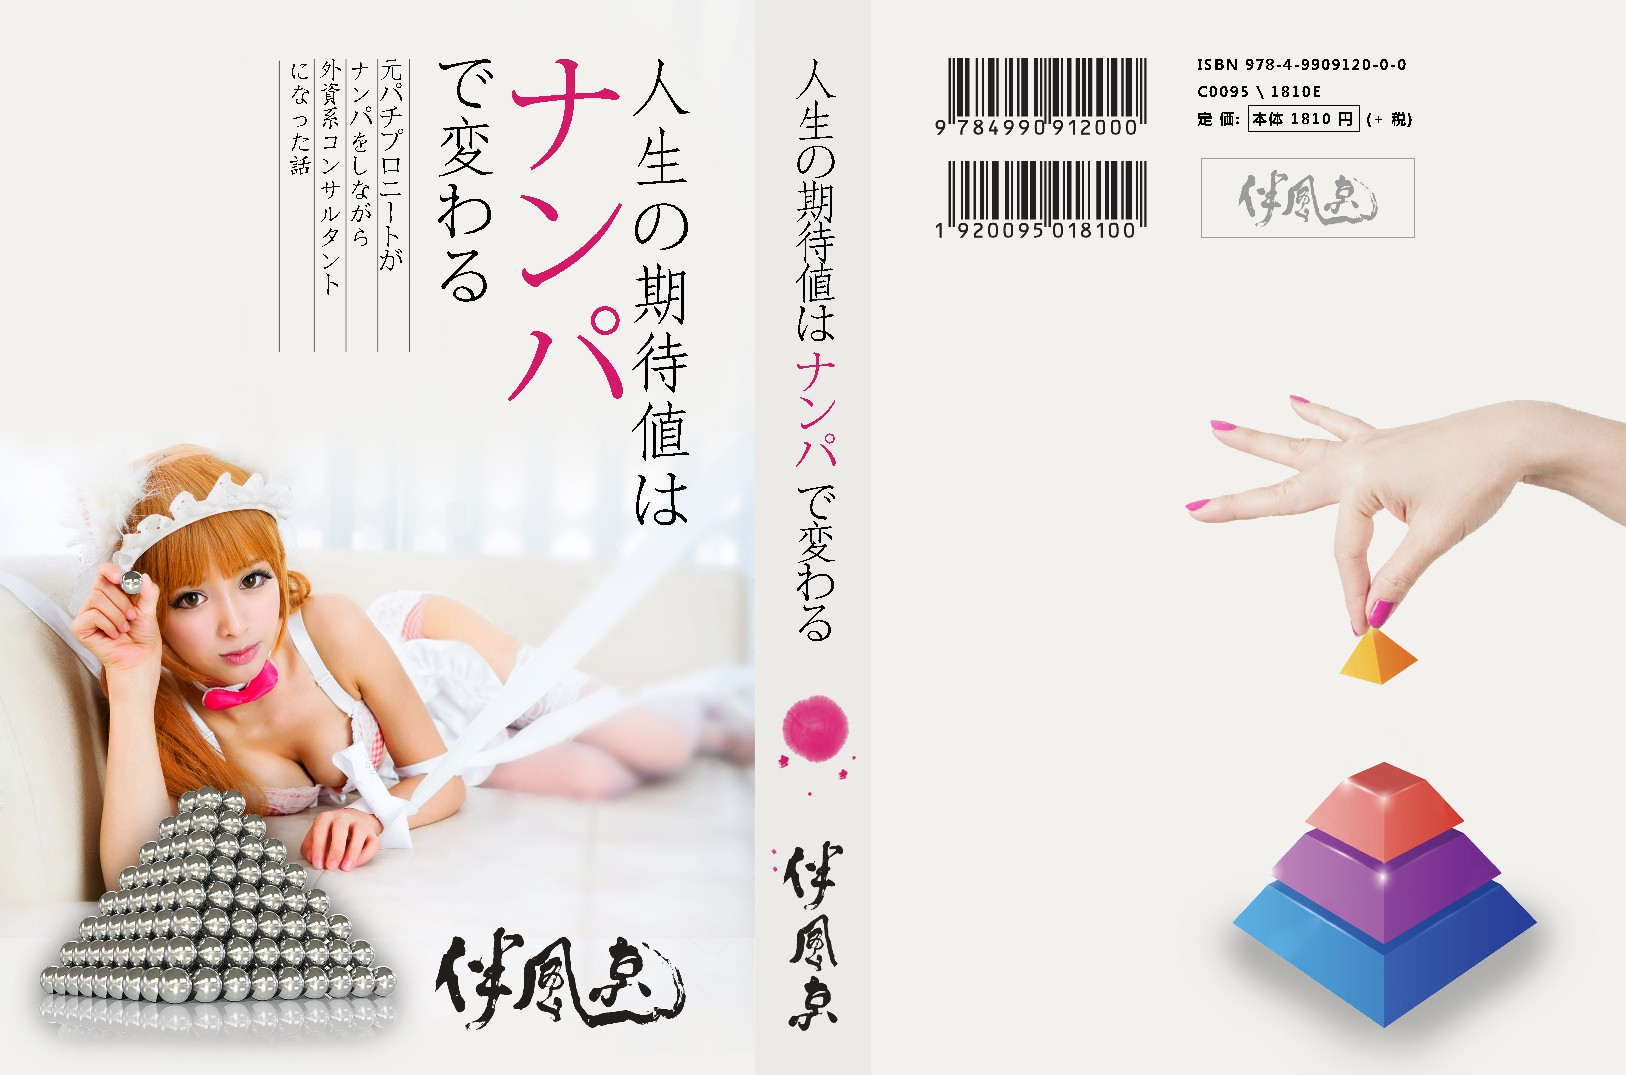 Book cover design for novel on picking up and dating / ナンパ本の表紙制作